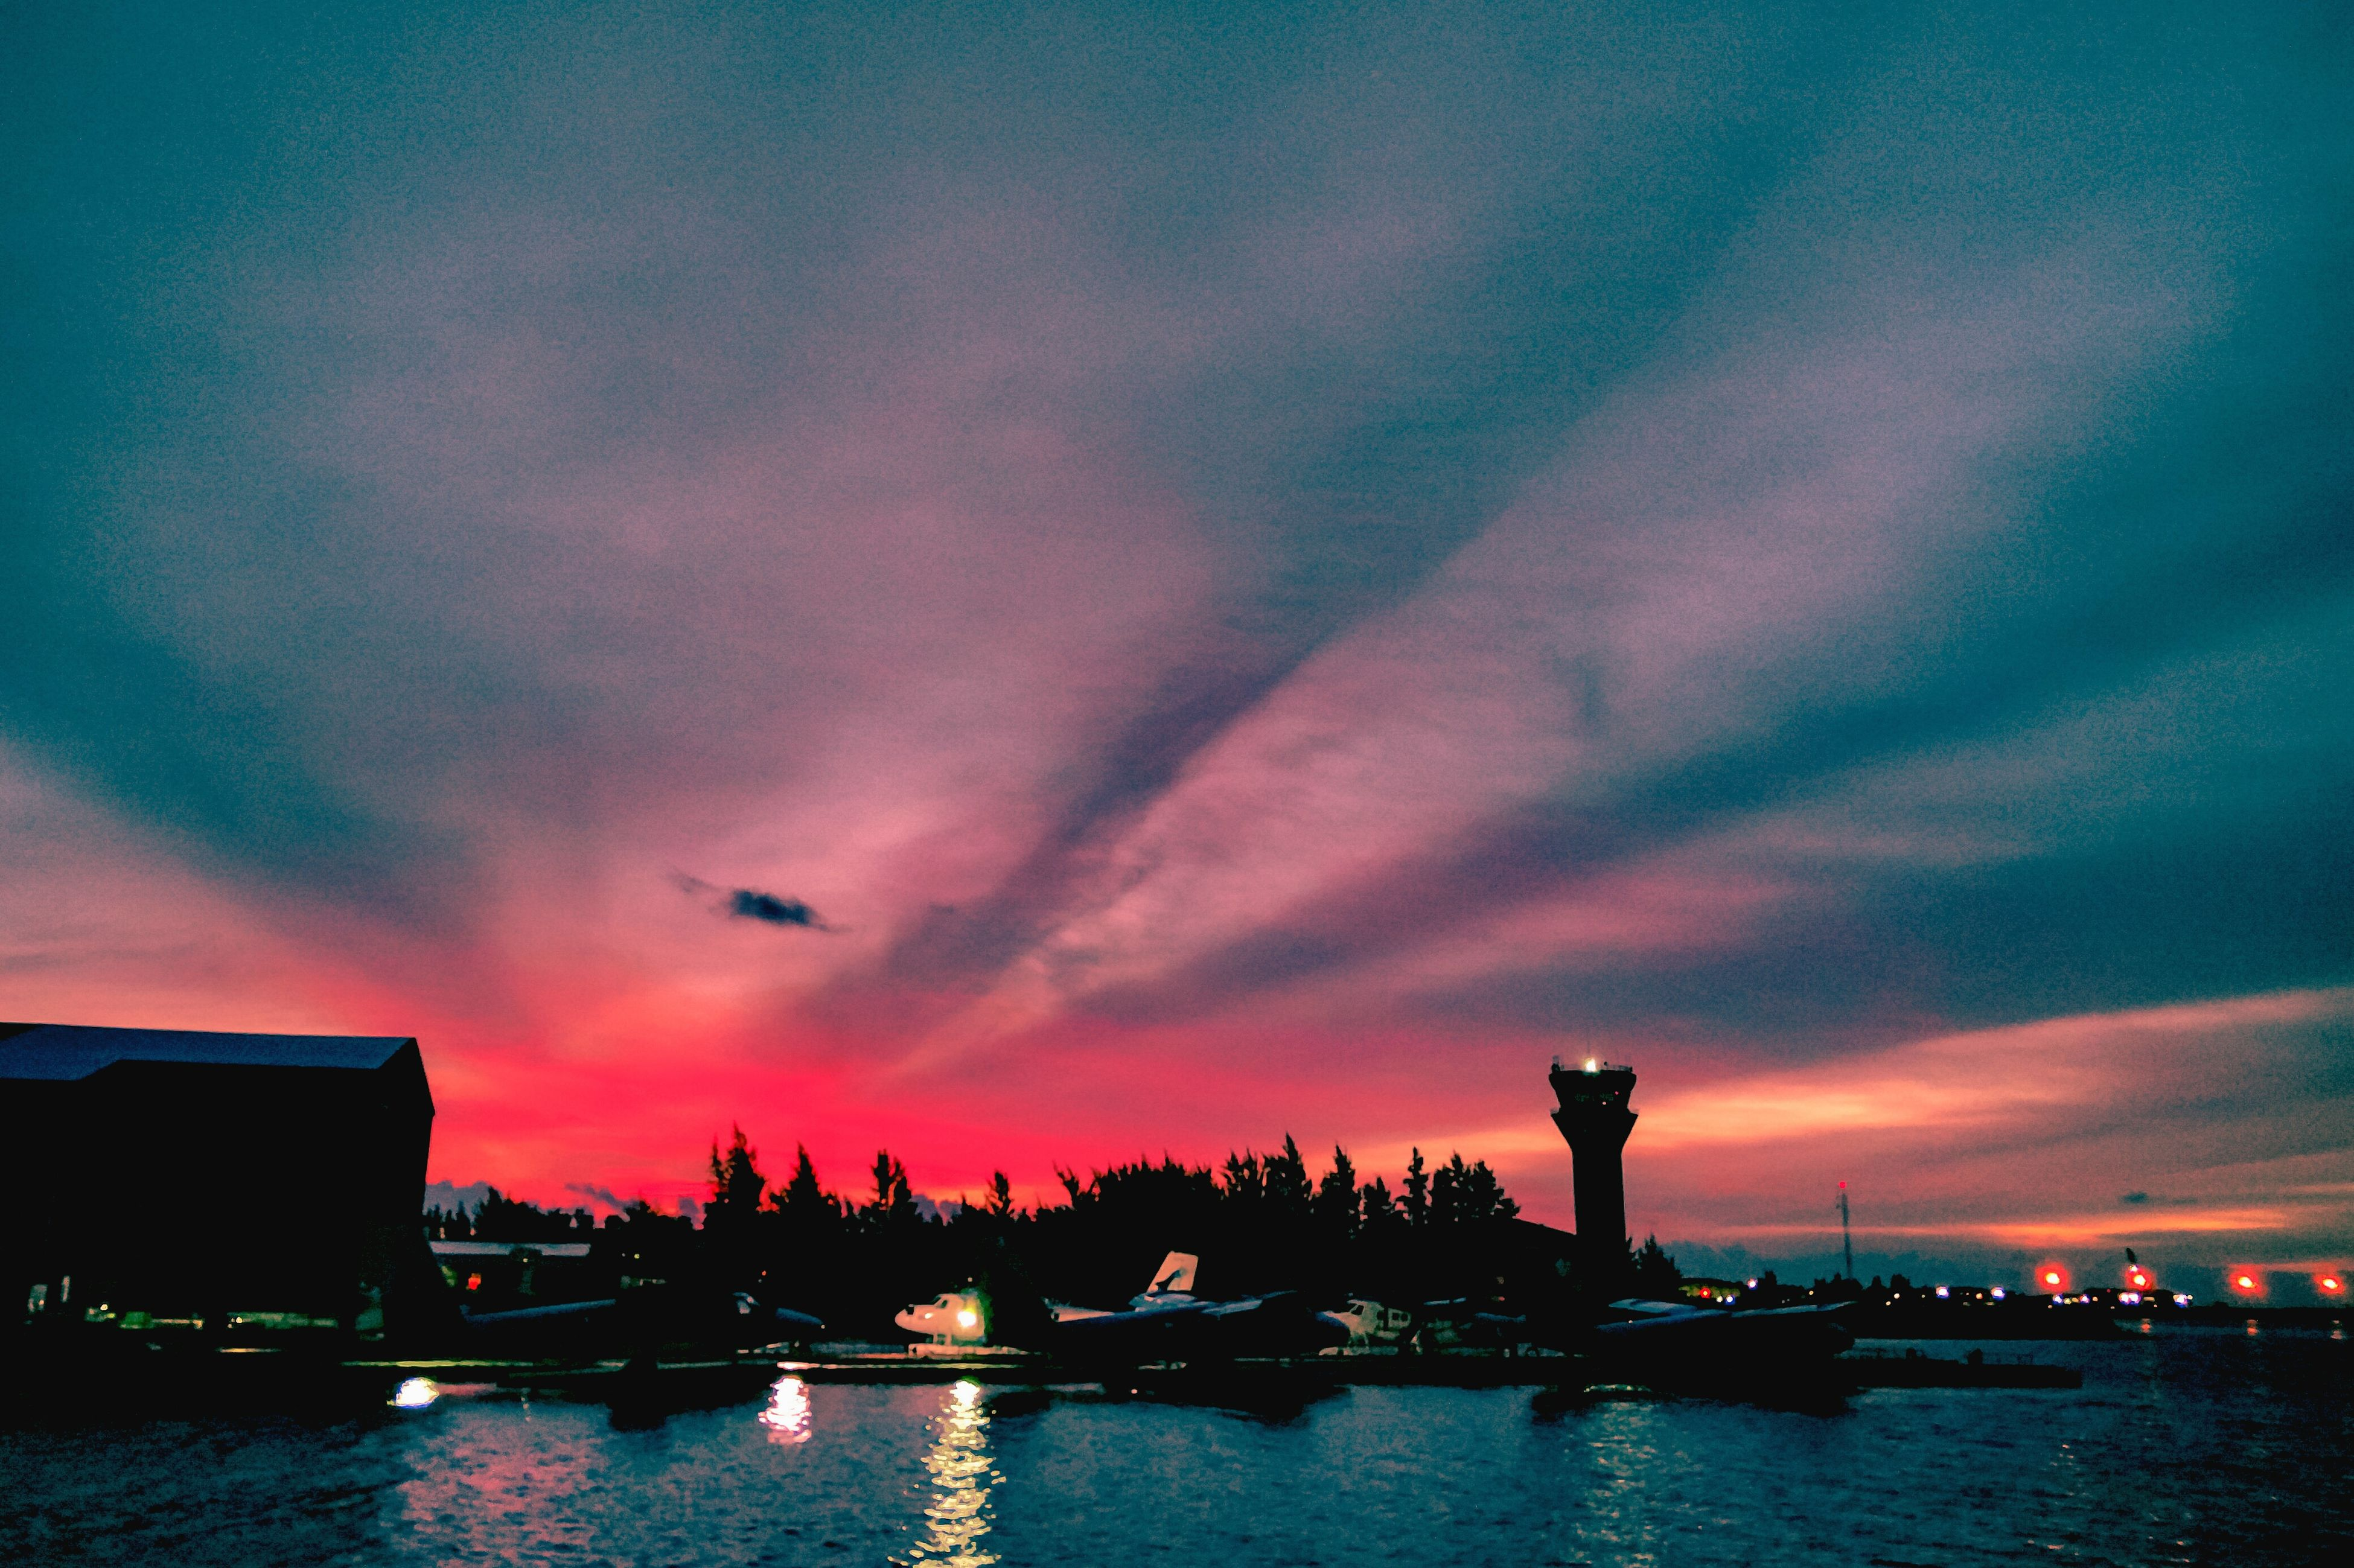 water, nautical vessel, boat, transportation, waterfront, sky, moored, river, sunset, cloud, tranquil scene, reflection, scenics, mode of transport, tranquility, illuminated, cloud - sky, dramatic sky, nature, calm, beauty in nature, outdoors, multi colored, harbor, cloudy, moody sky, outline